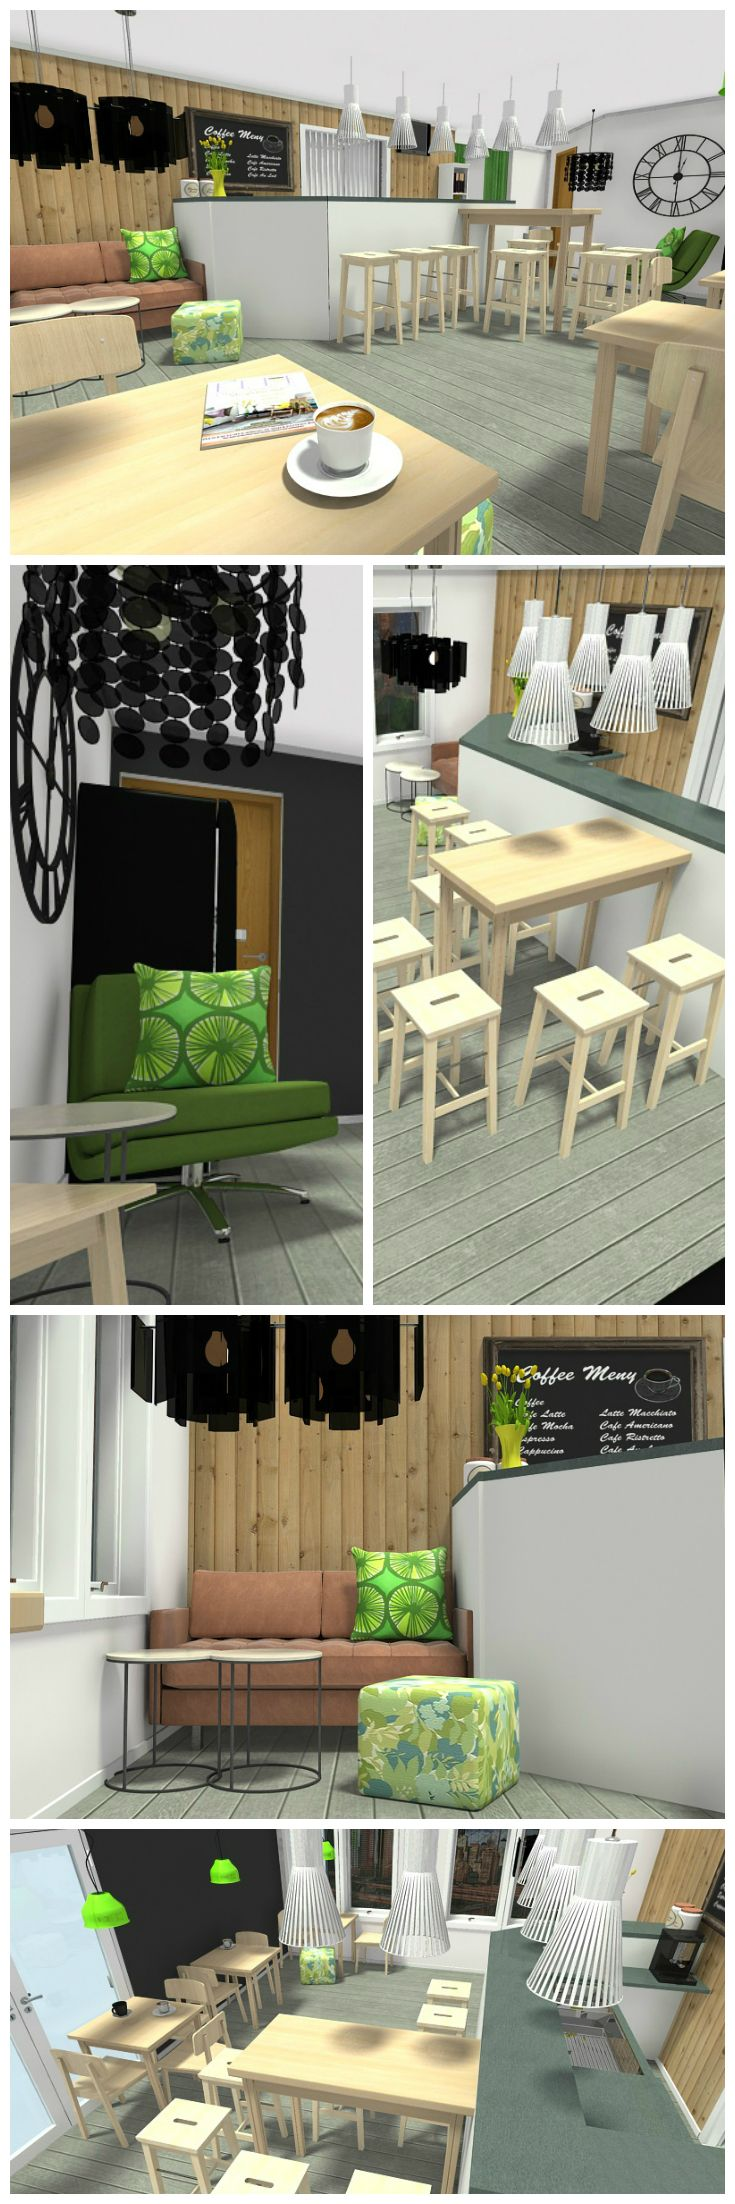 8 best floor plan ideas images on pinterest floor plans visualize all the details for your restaurant or cafe project from the floor plan to stunning 3d photocommercial designget